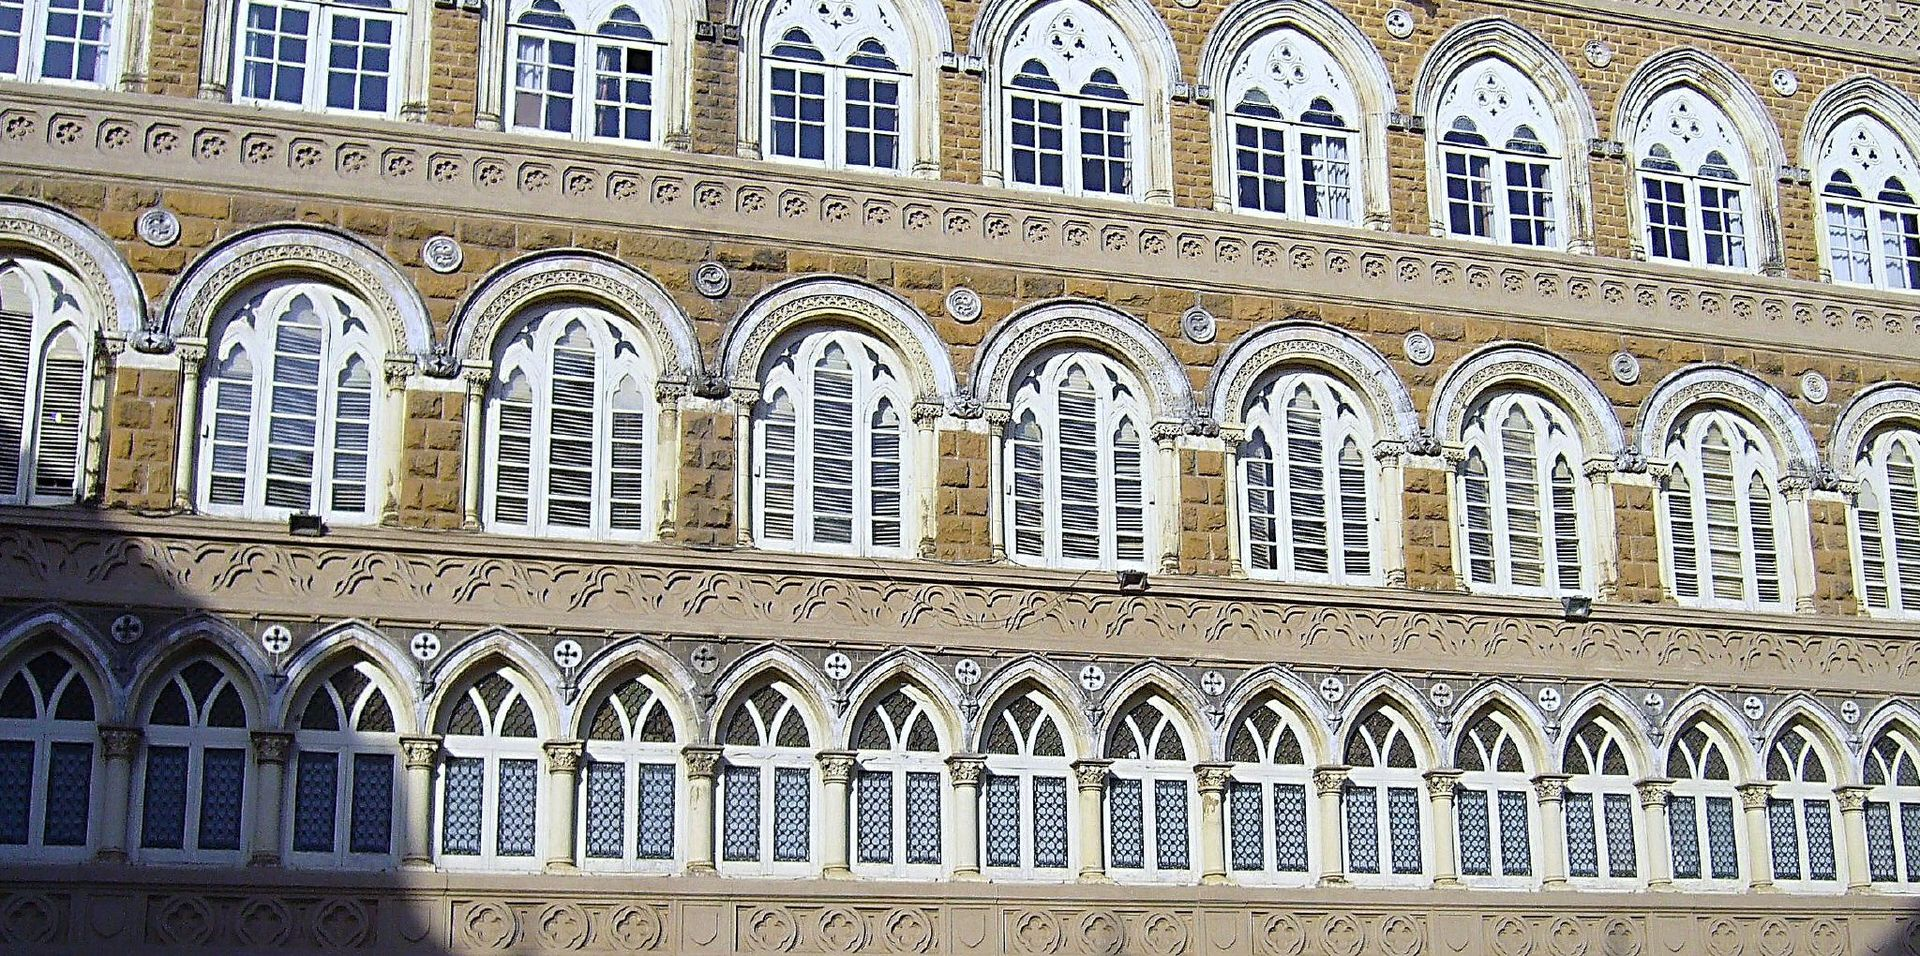 Architectural details of St. Xavier's buildings